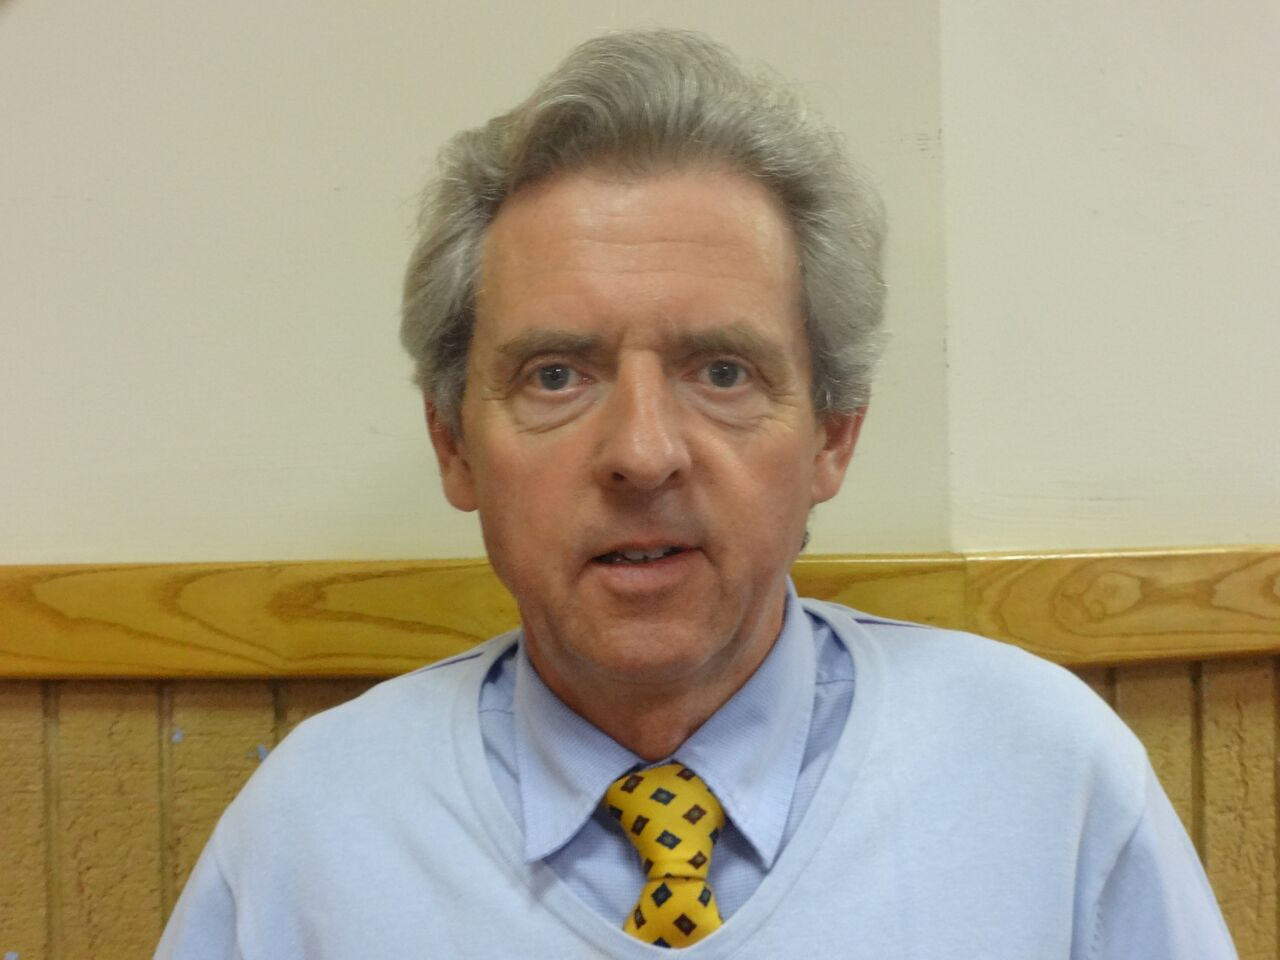 Cllr Anthony Lowe (Conservative)